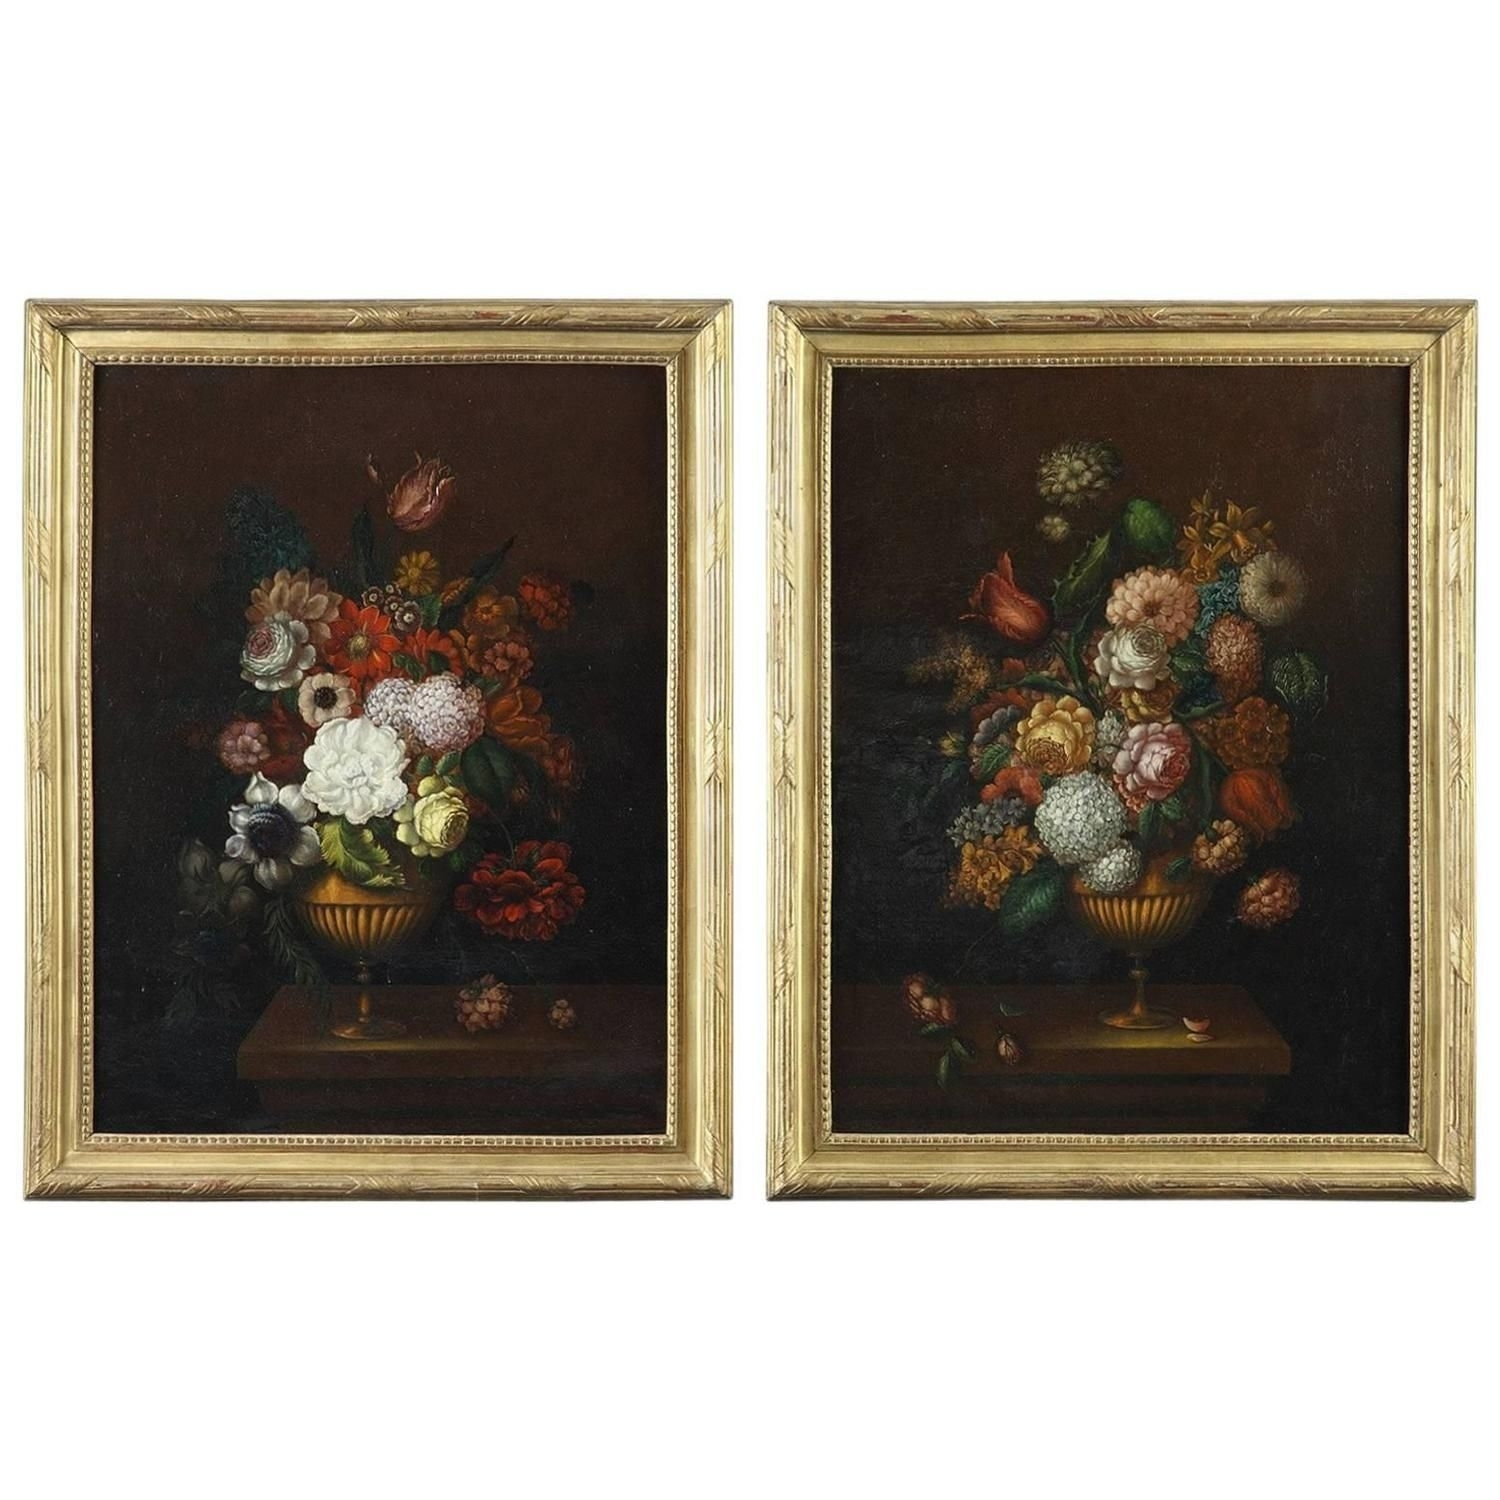 Pair Of Oil On Canvas Paintings, Flower Bouquets From 19Th Century Pertaining To 2017 Canvas Wall Art Pairs (View 9 of 15)